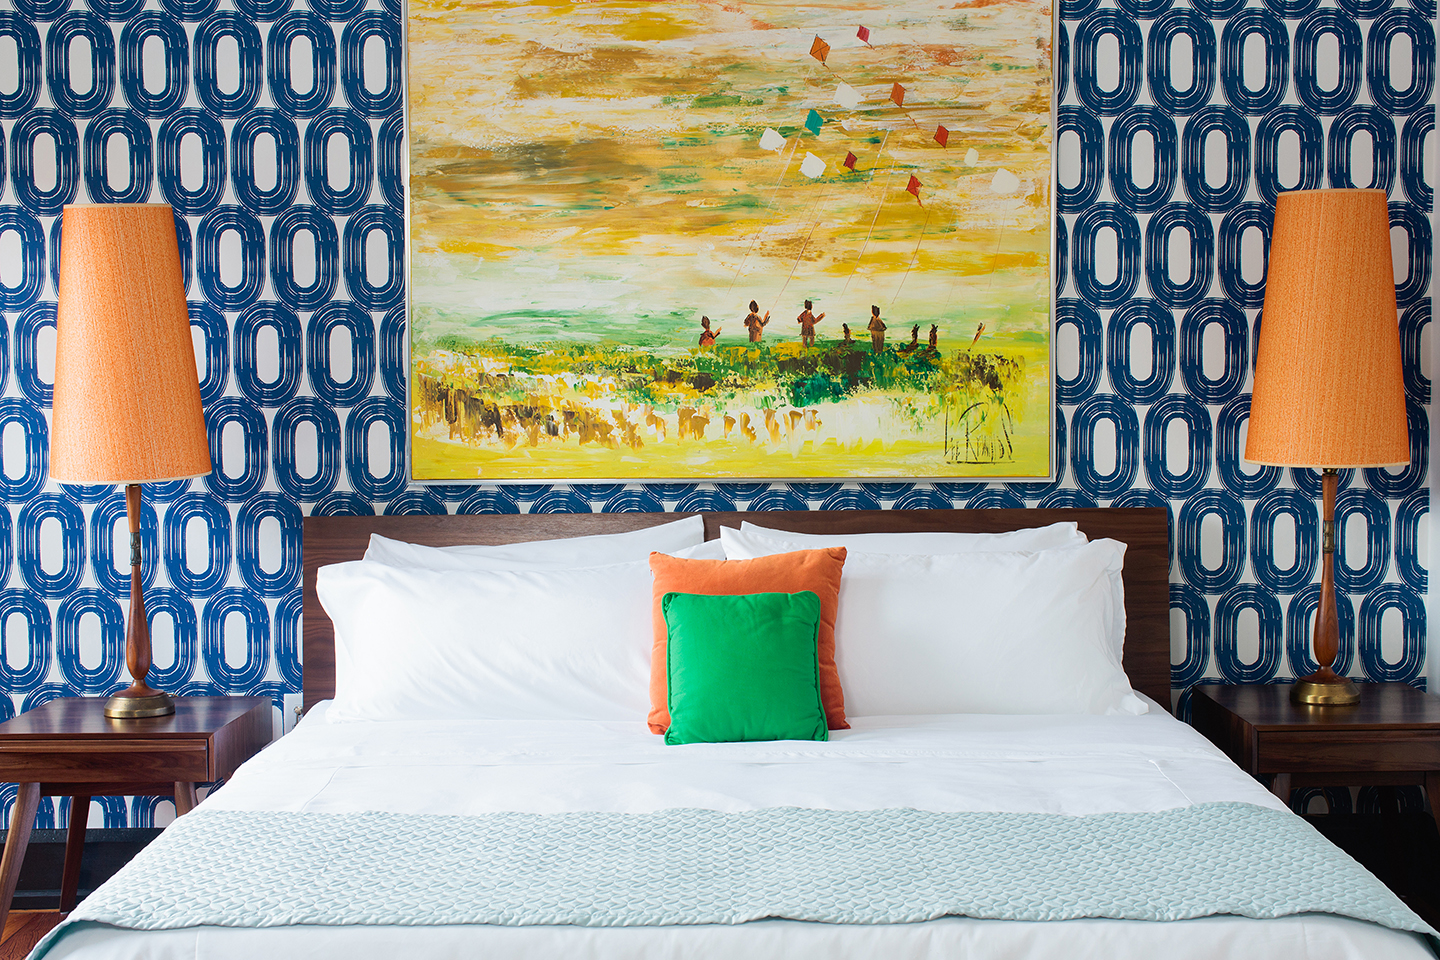 Dwell Hotel, The Kite Suite, Photographed by: Graham Yelton - Life-Styled.net